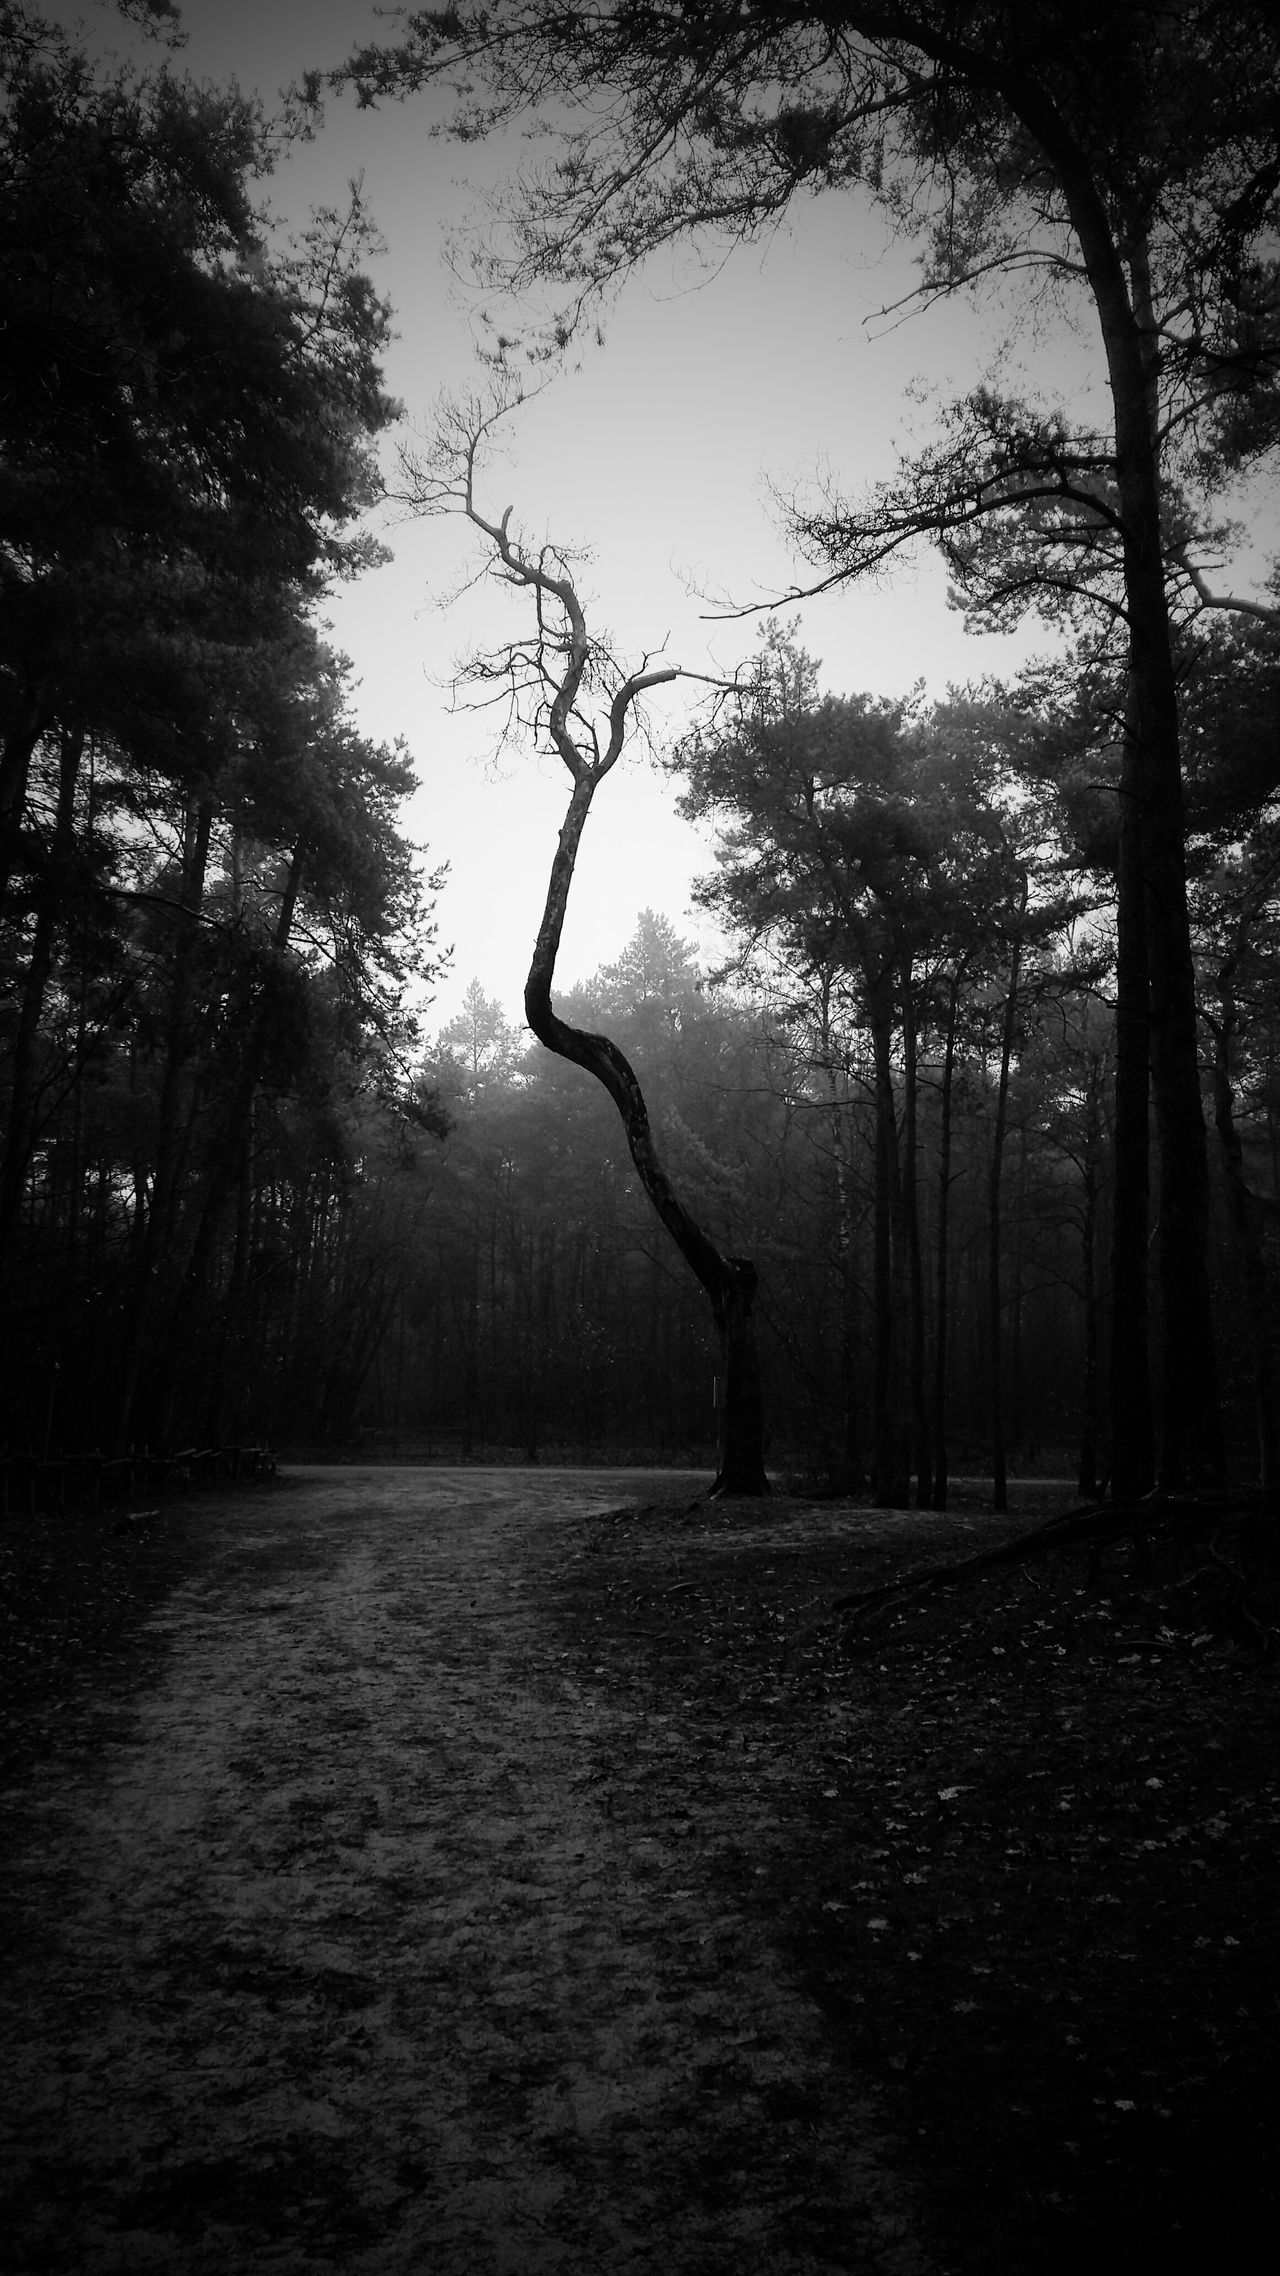 Tree Nature Sky Silhouette No People Outdoors Growth Tranquility Water Tranquil Scene Beauty In Nature Scenics Branch Day Animal Themes Blackandwhite Nature Landscape Tree Tranquility Growth Beauty In Nature Nature_collection Losser Zandbergen